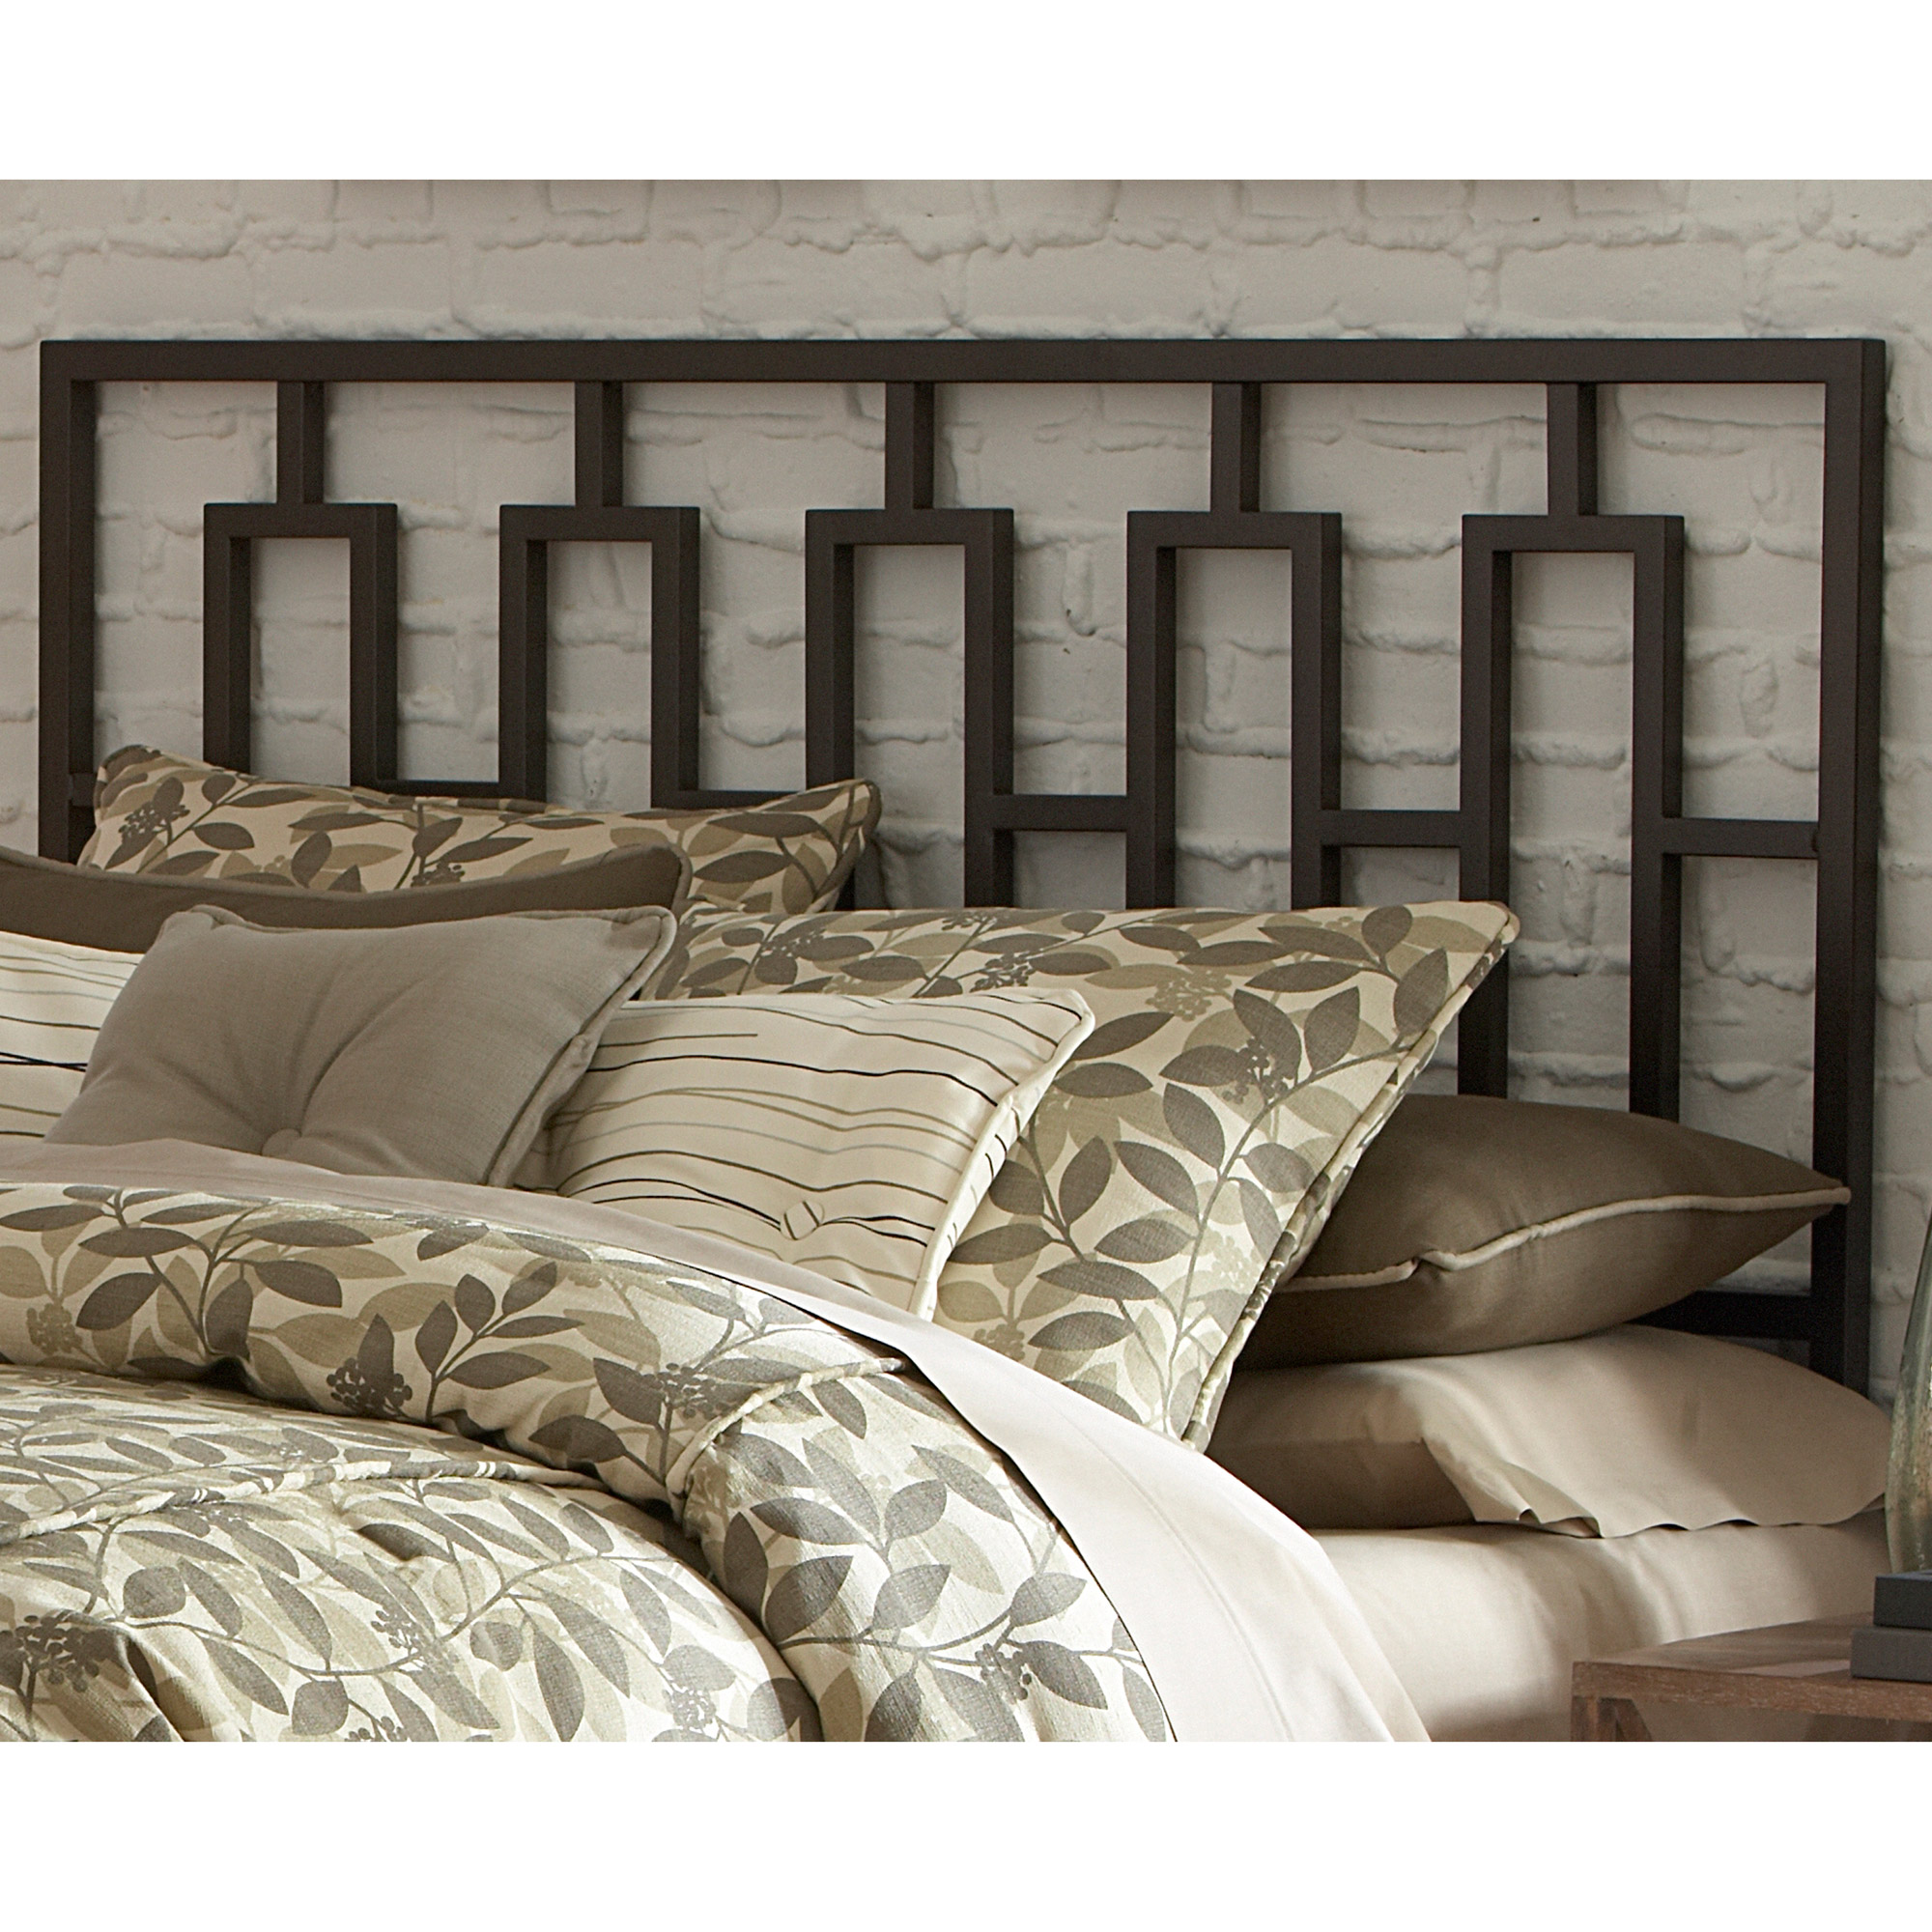 headboard ethan di frames allen front king bed bedroom furniture size en shop null mission us beds queen